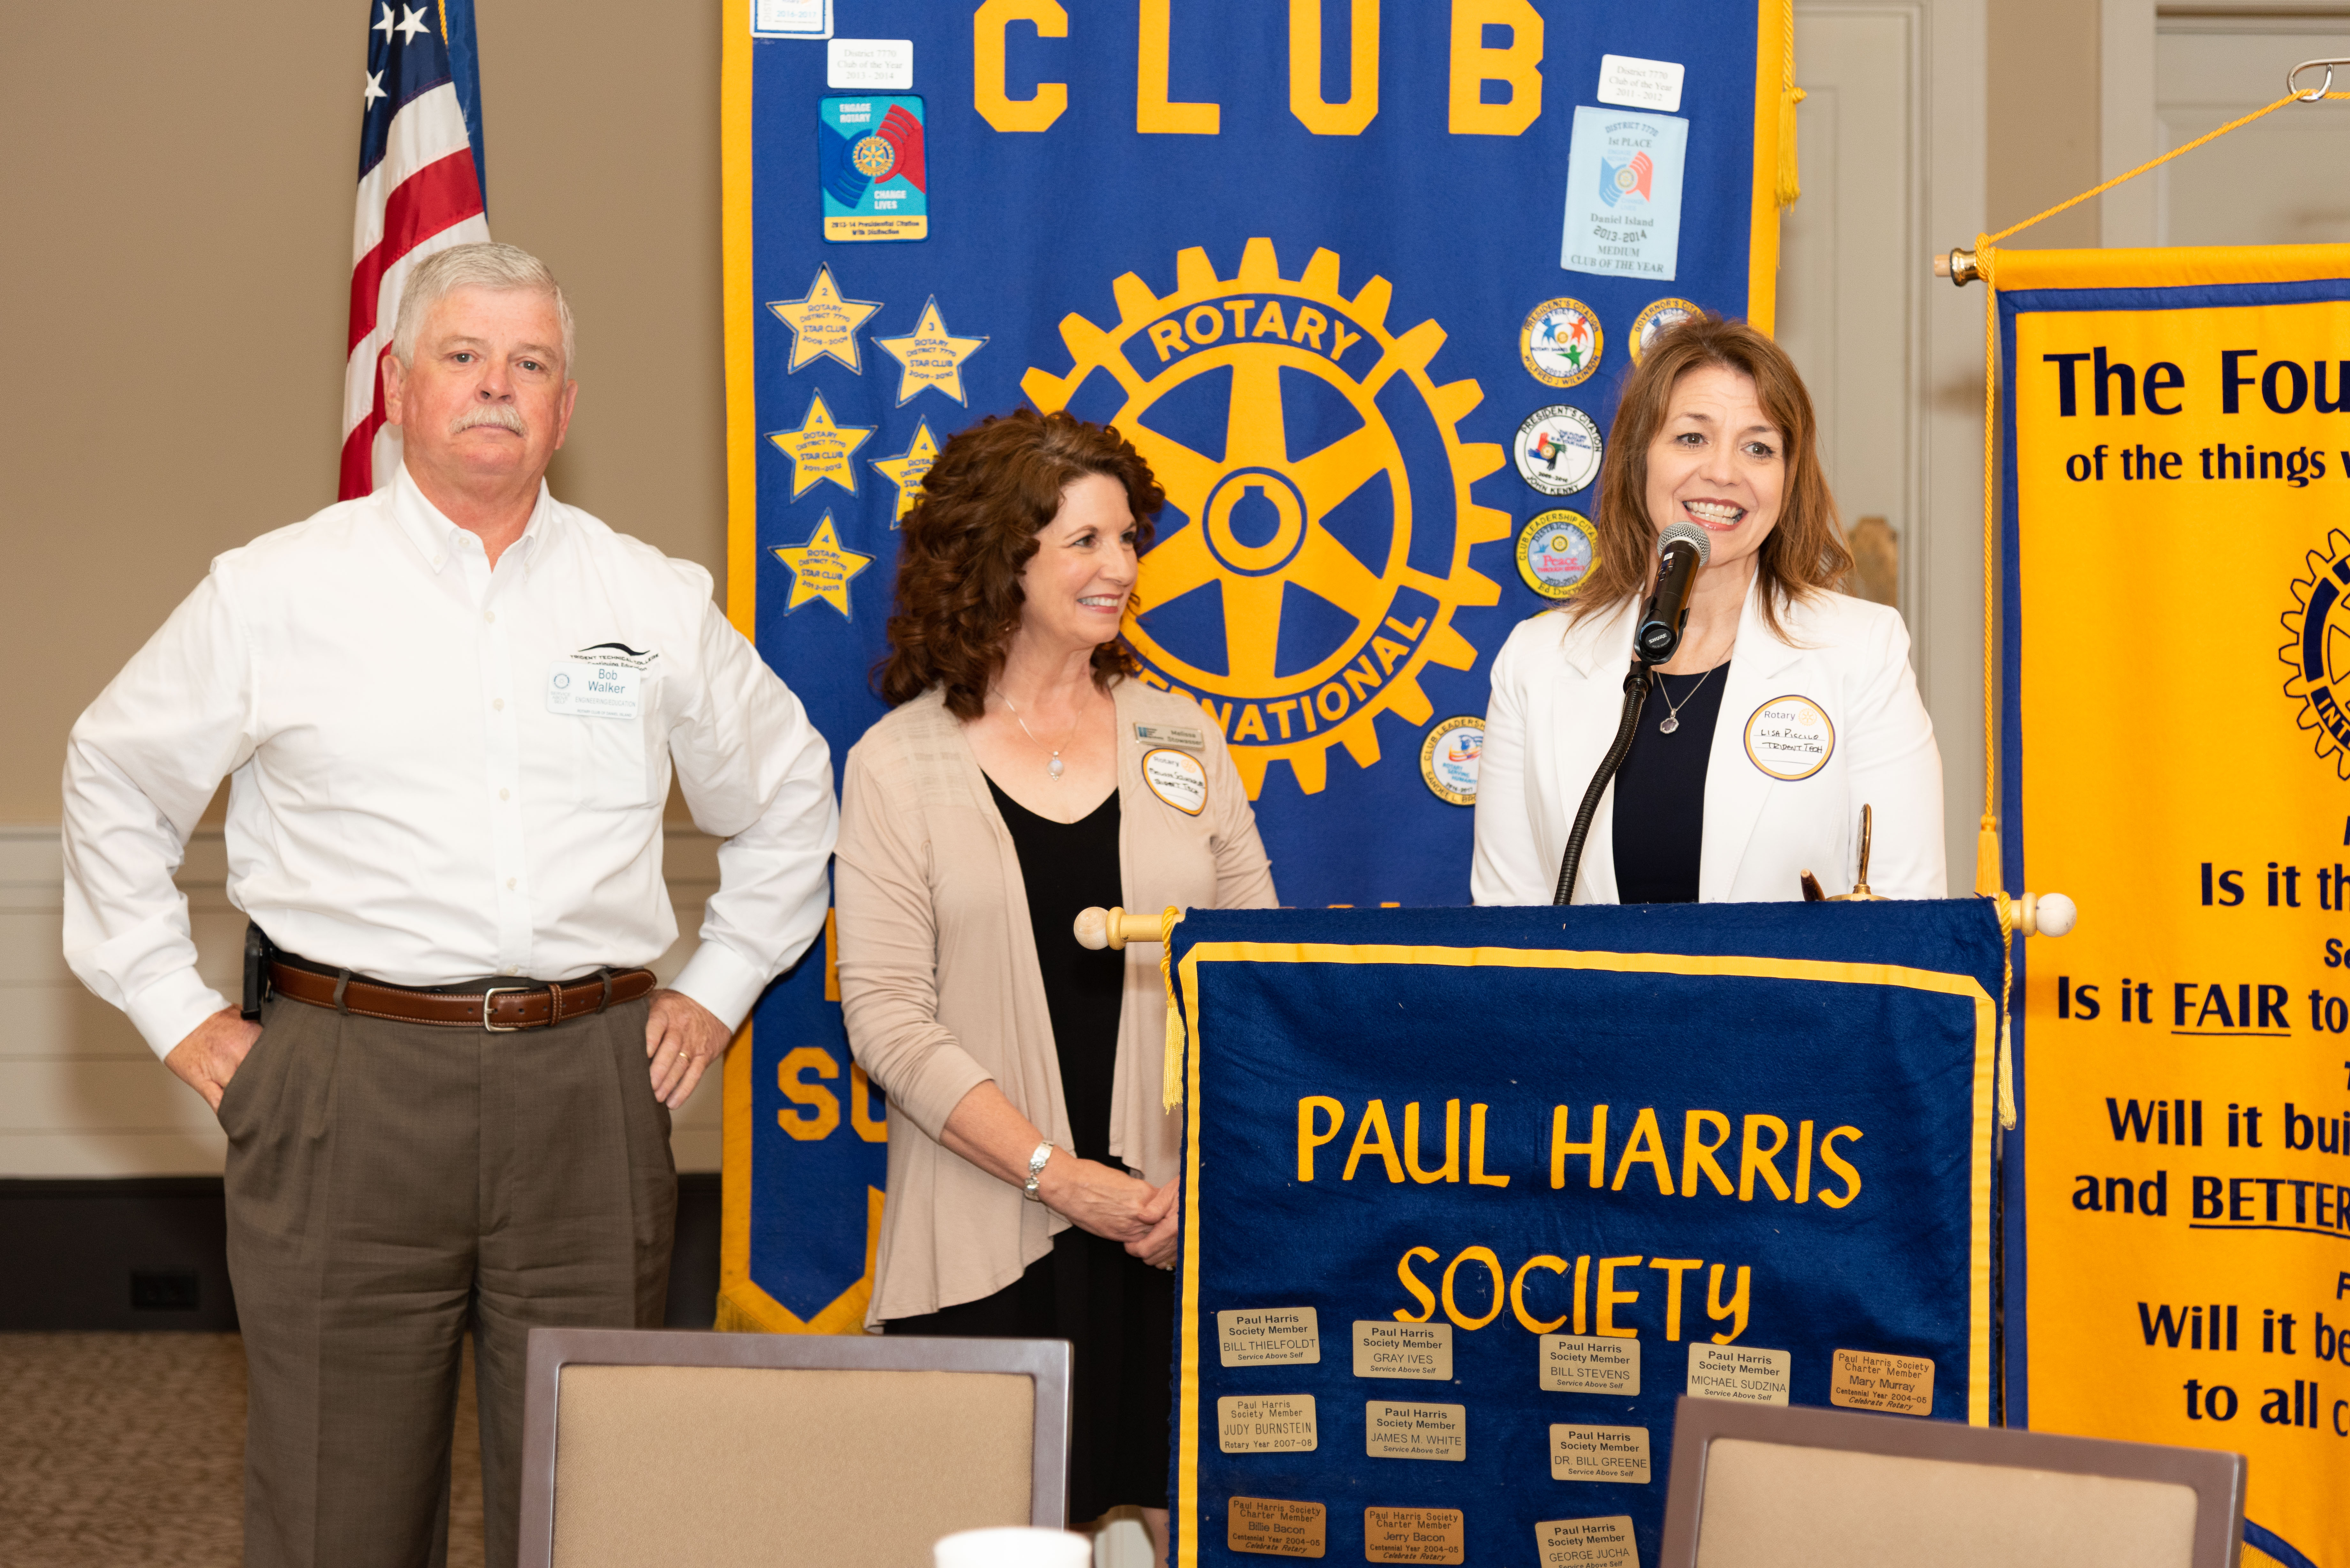 Lisa Piccolo, Trident Technical College's vice president for development and executive director of the TTC program, takes time to thank the Rotary Club of Daniel Island for their support of the college's youth apprenticeship program.